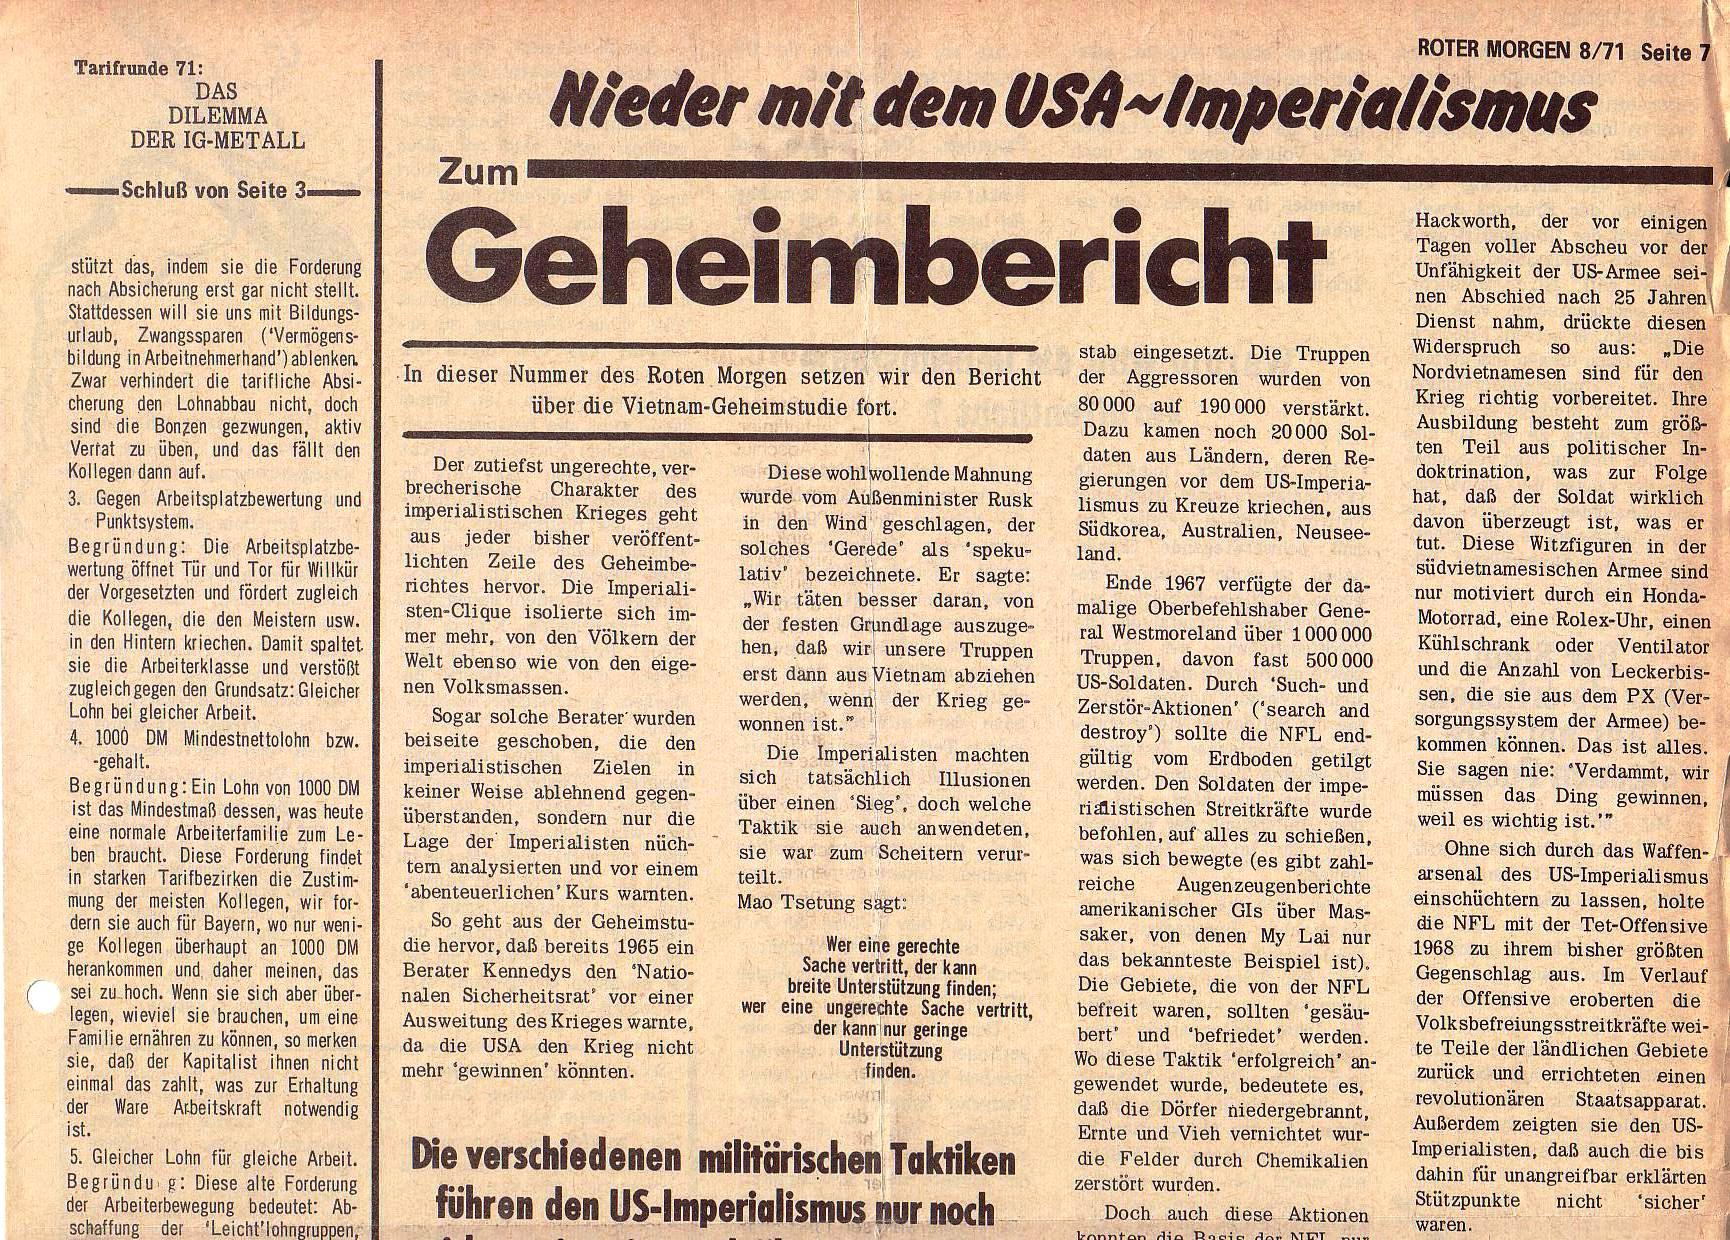 Roter Morgen, 5. Jg., August 1971, Nr. 8, Seite 7a